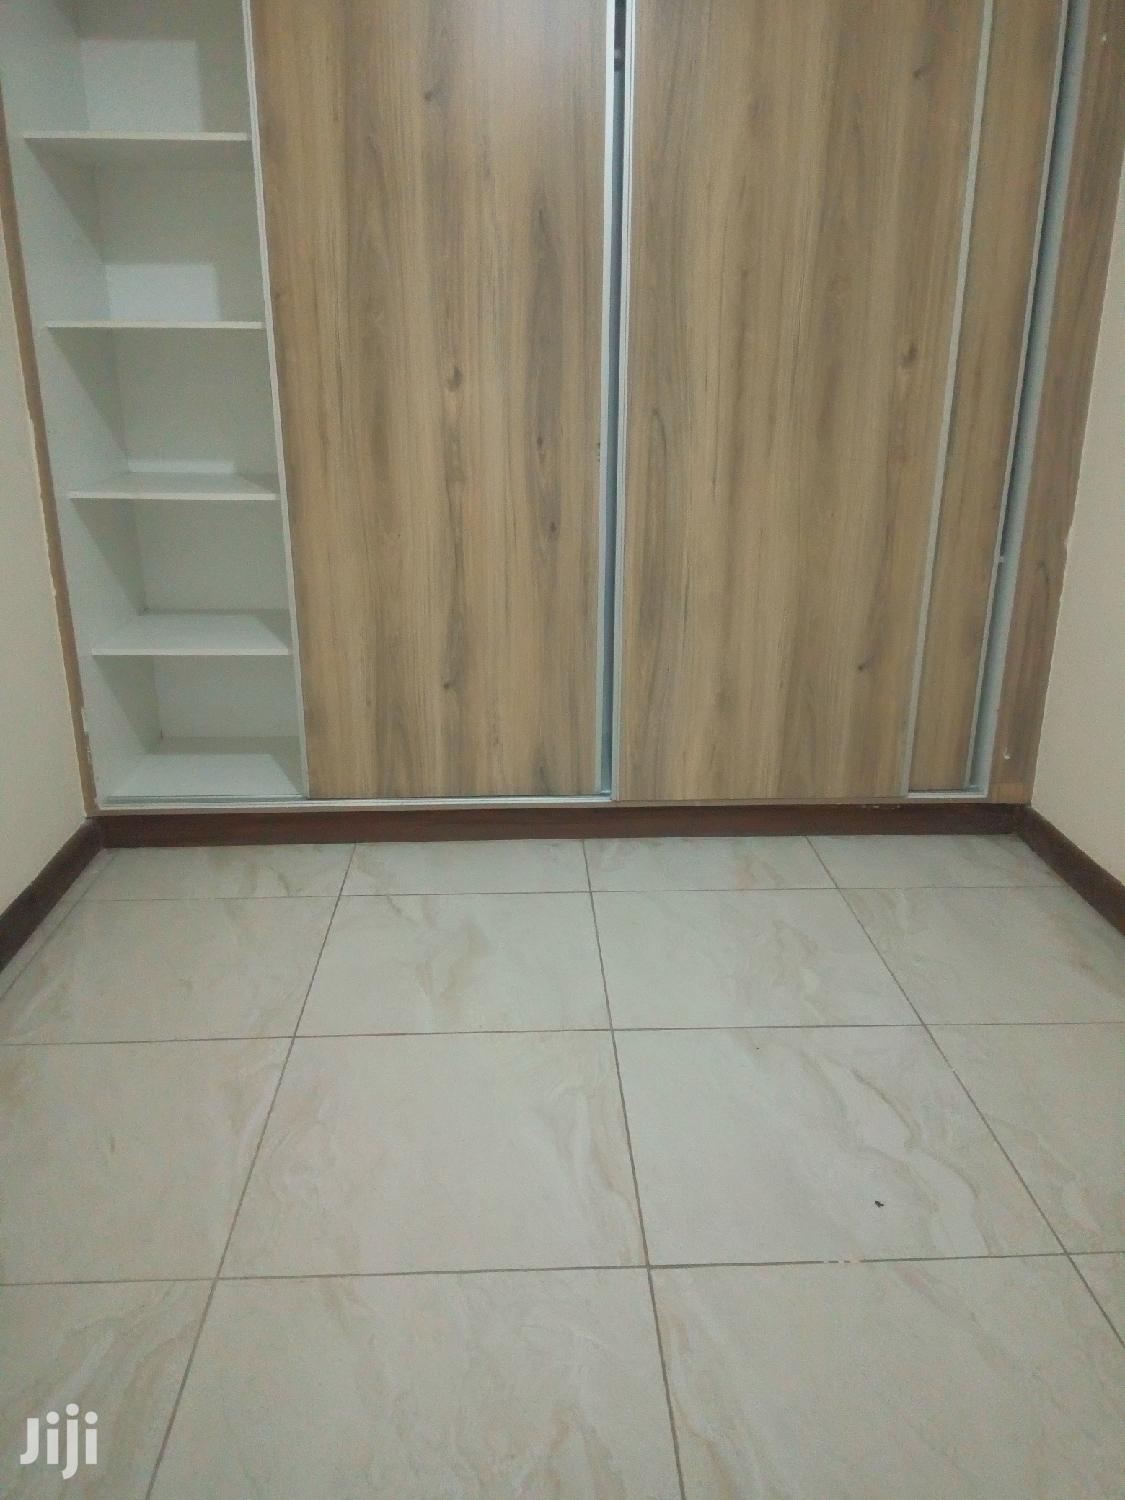 Luxury Modern Three Bedrooms to Let in South C | Houses & Apartments For Rent for sale in South C, Nairobi, Kenya